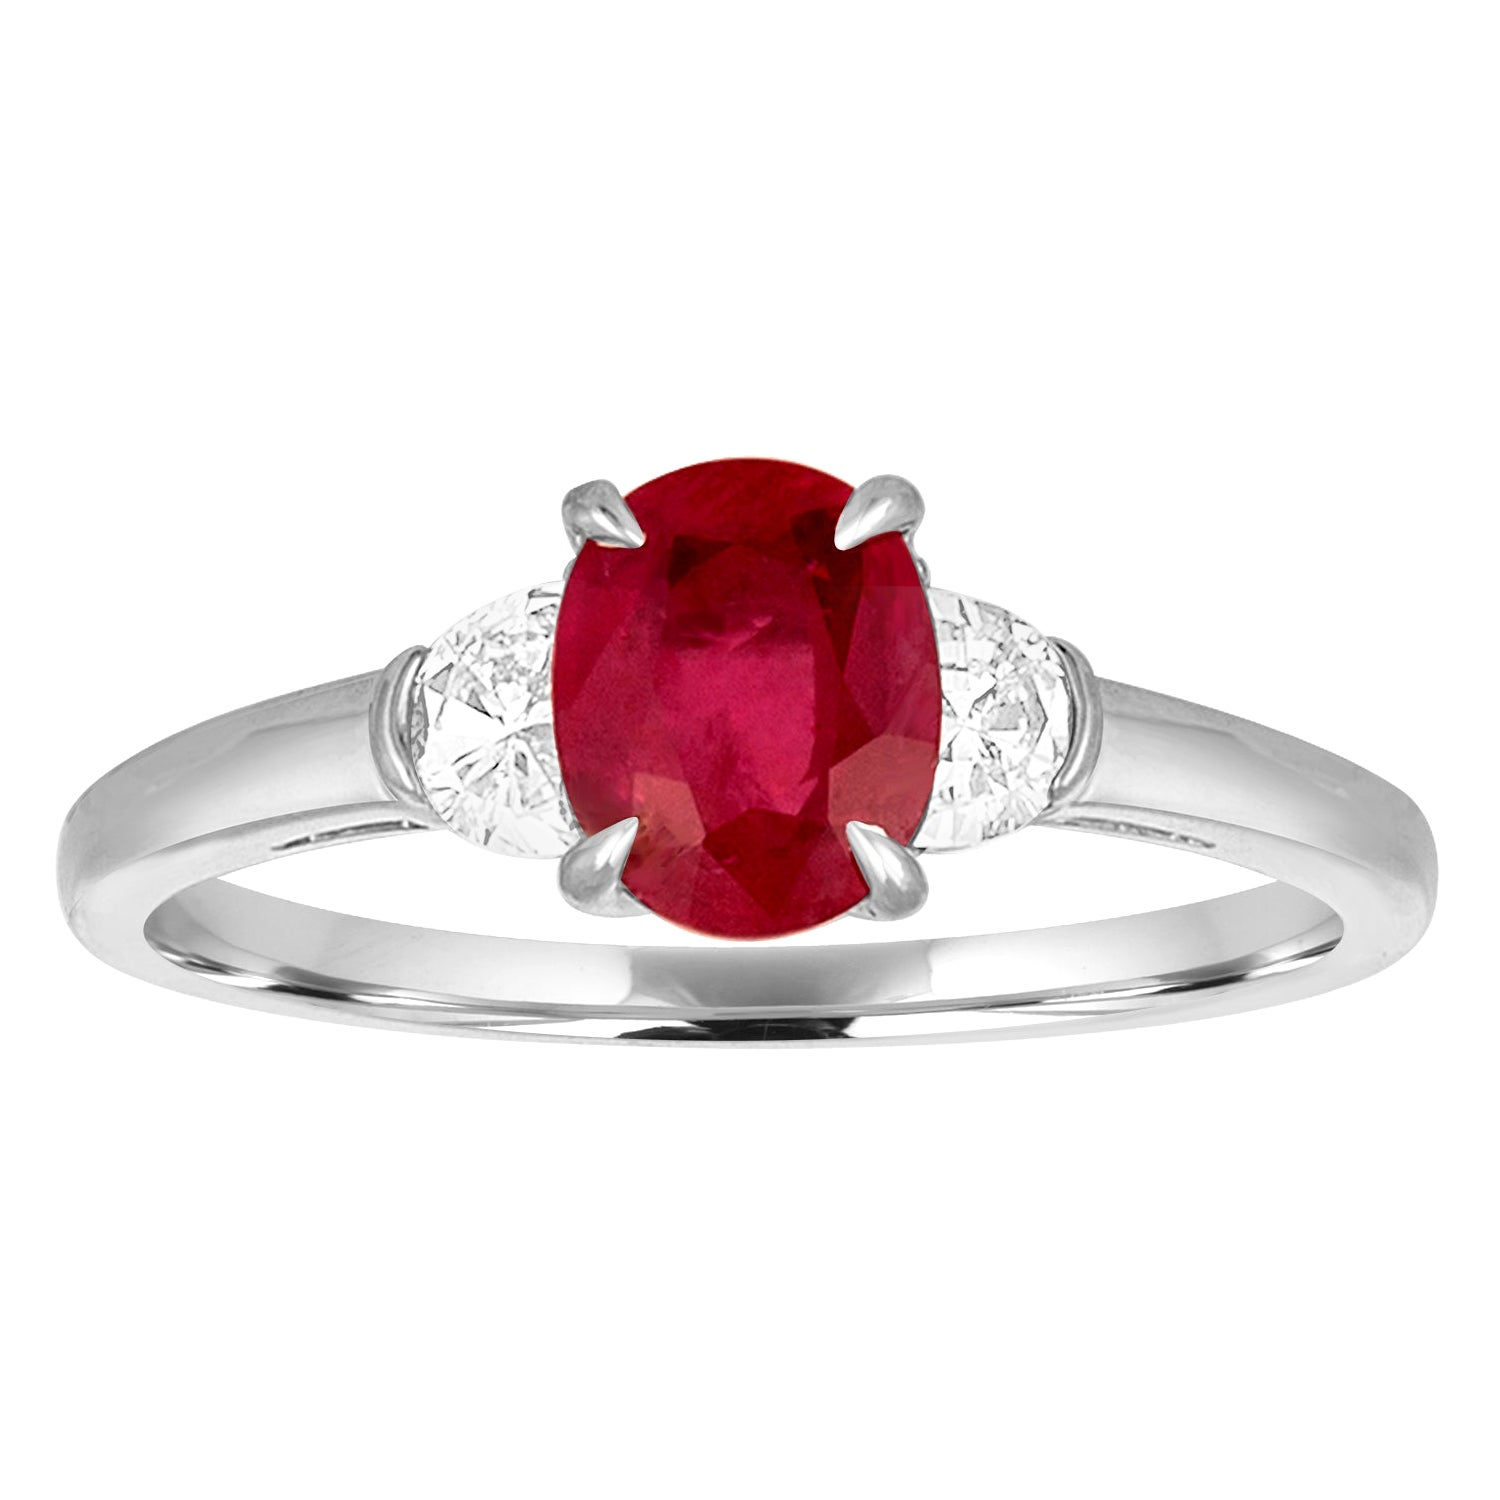 AGL Certified 1.04 Carat Oval Ruby Diamond Gold Ring